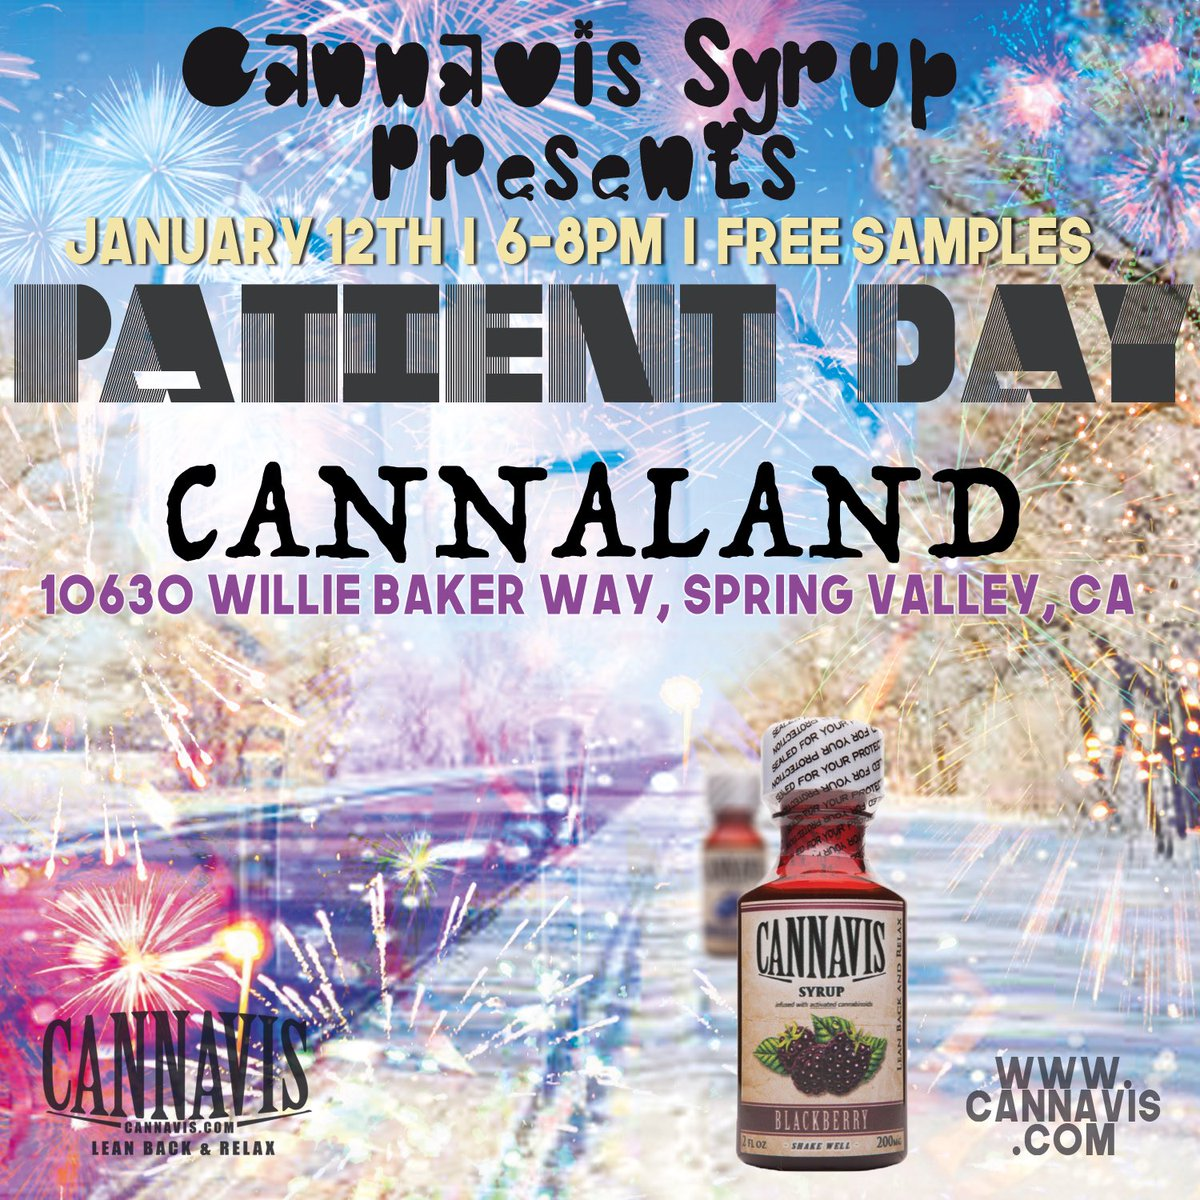 RT @CannavisSyrup: Patient days all over the country this week for cannavis syrup. Come see the truth for yourself! https://t.co/4g6tHYmItB